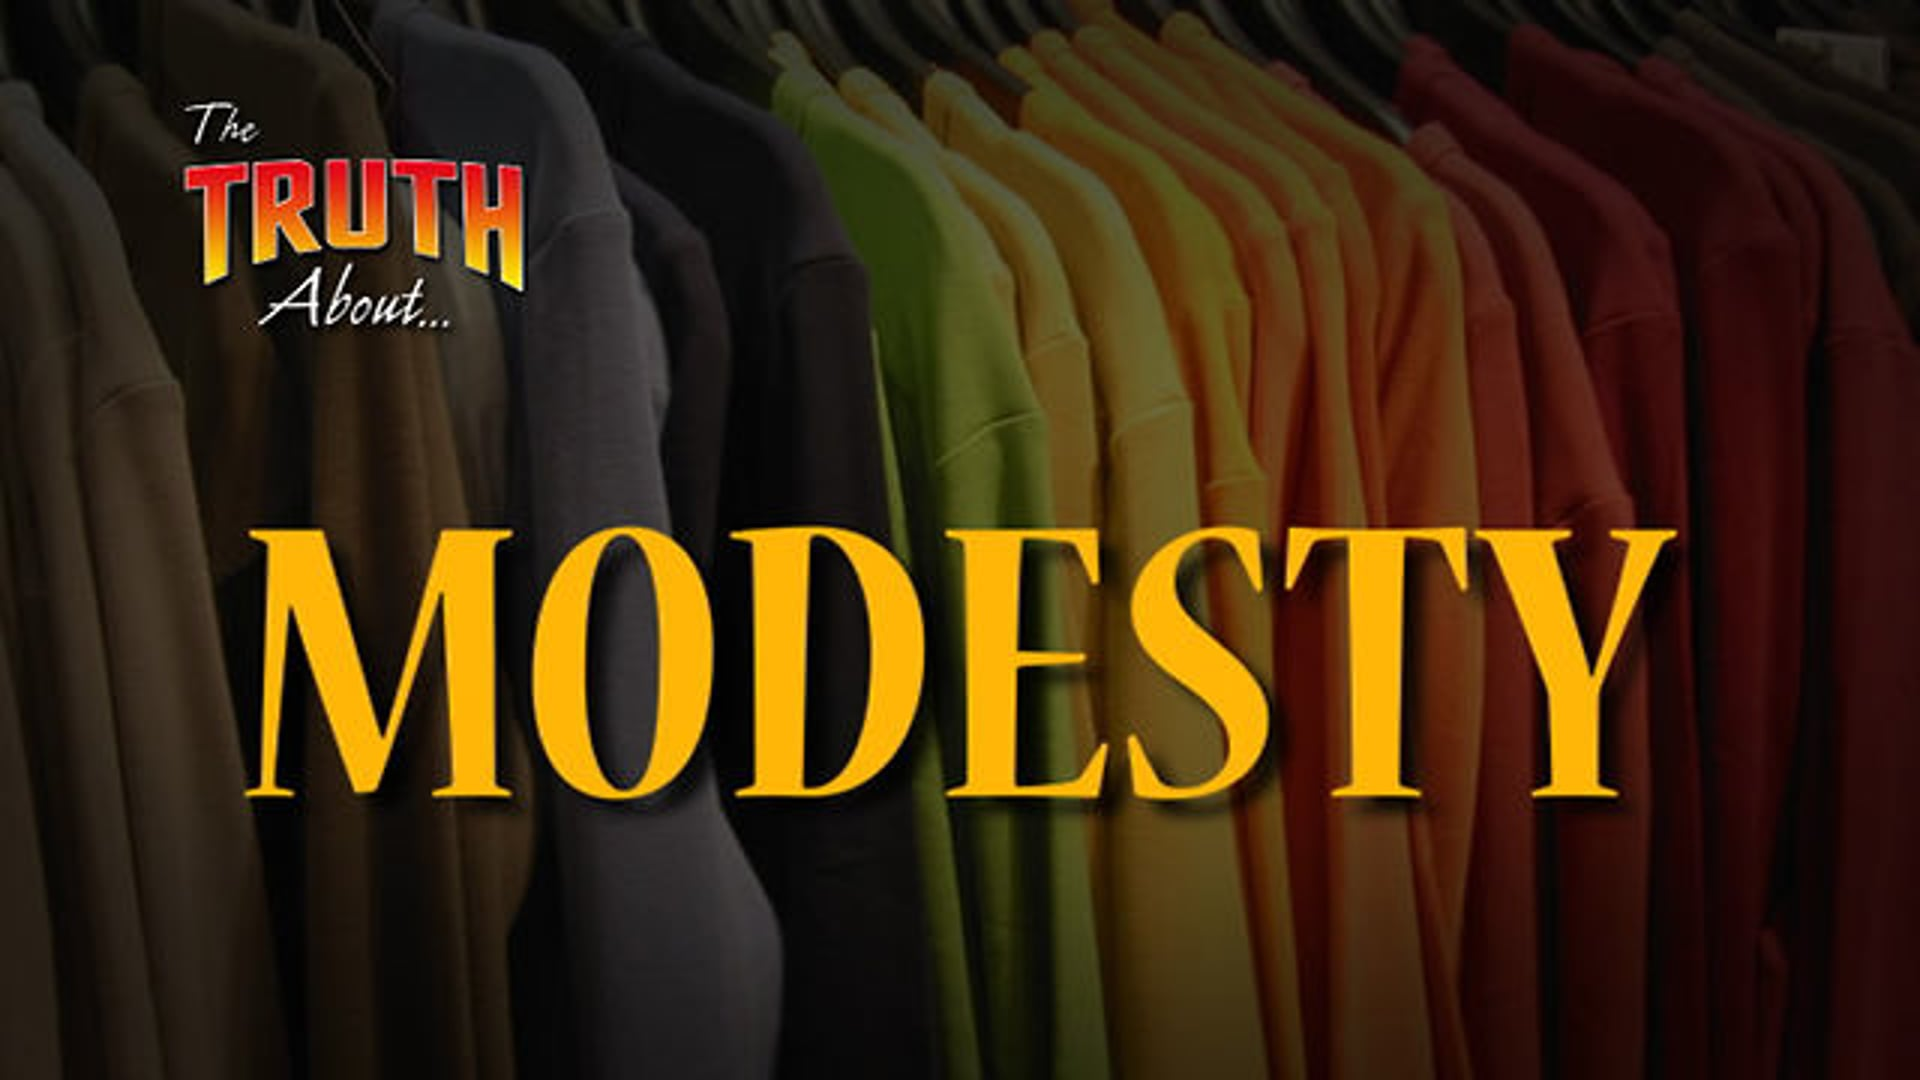 The Truth About... Modesty